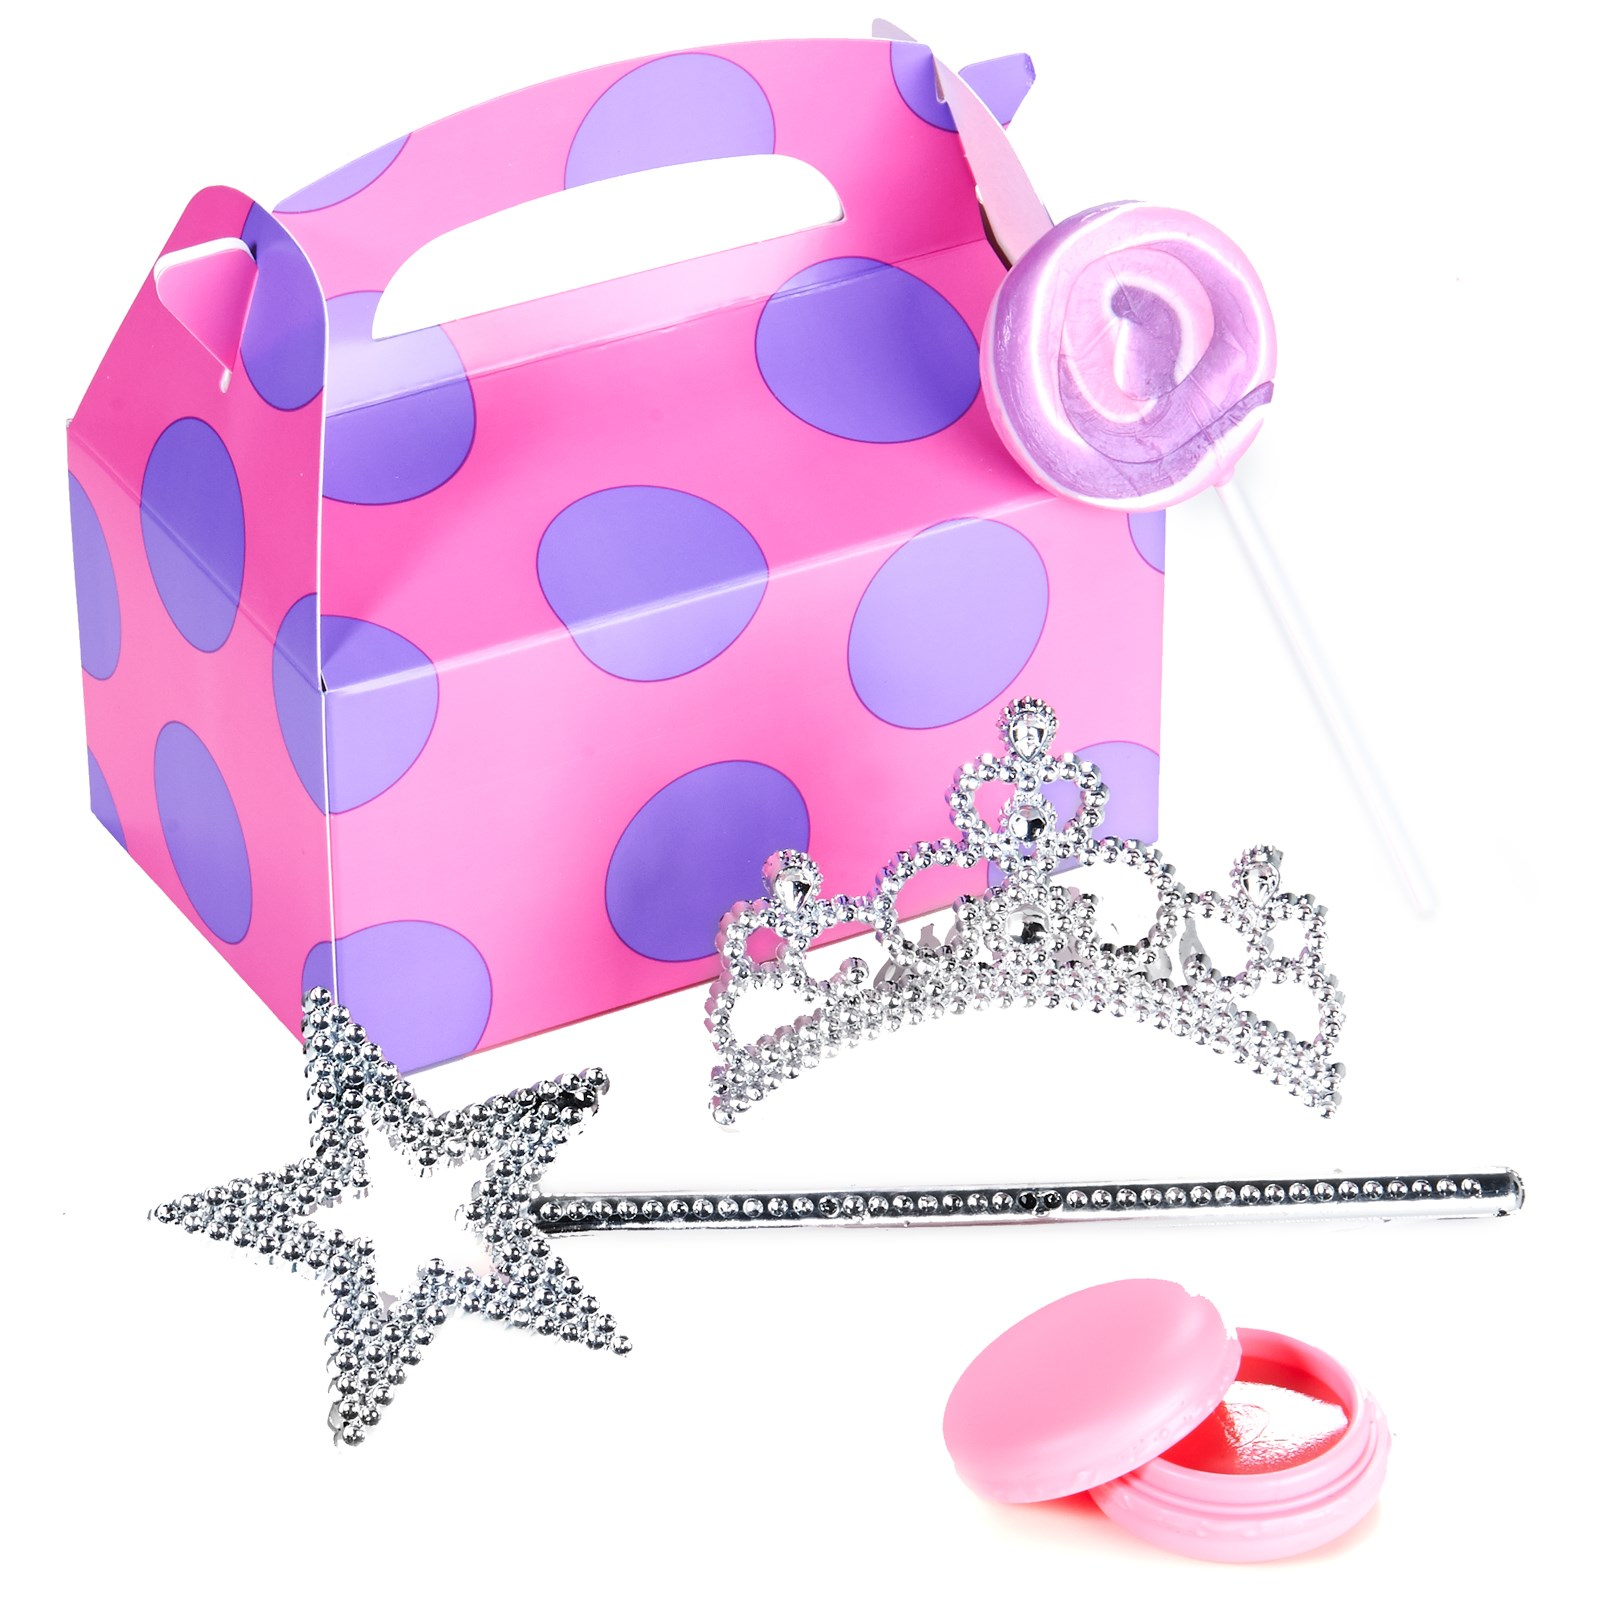 Disney Very Important Princess Dream Party - Filled Party Favor Box